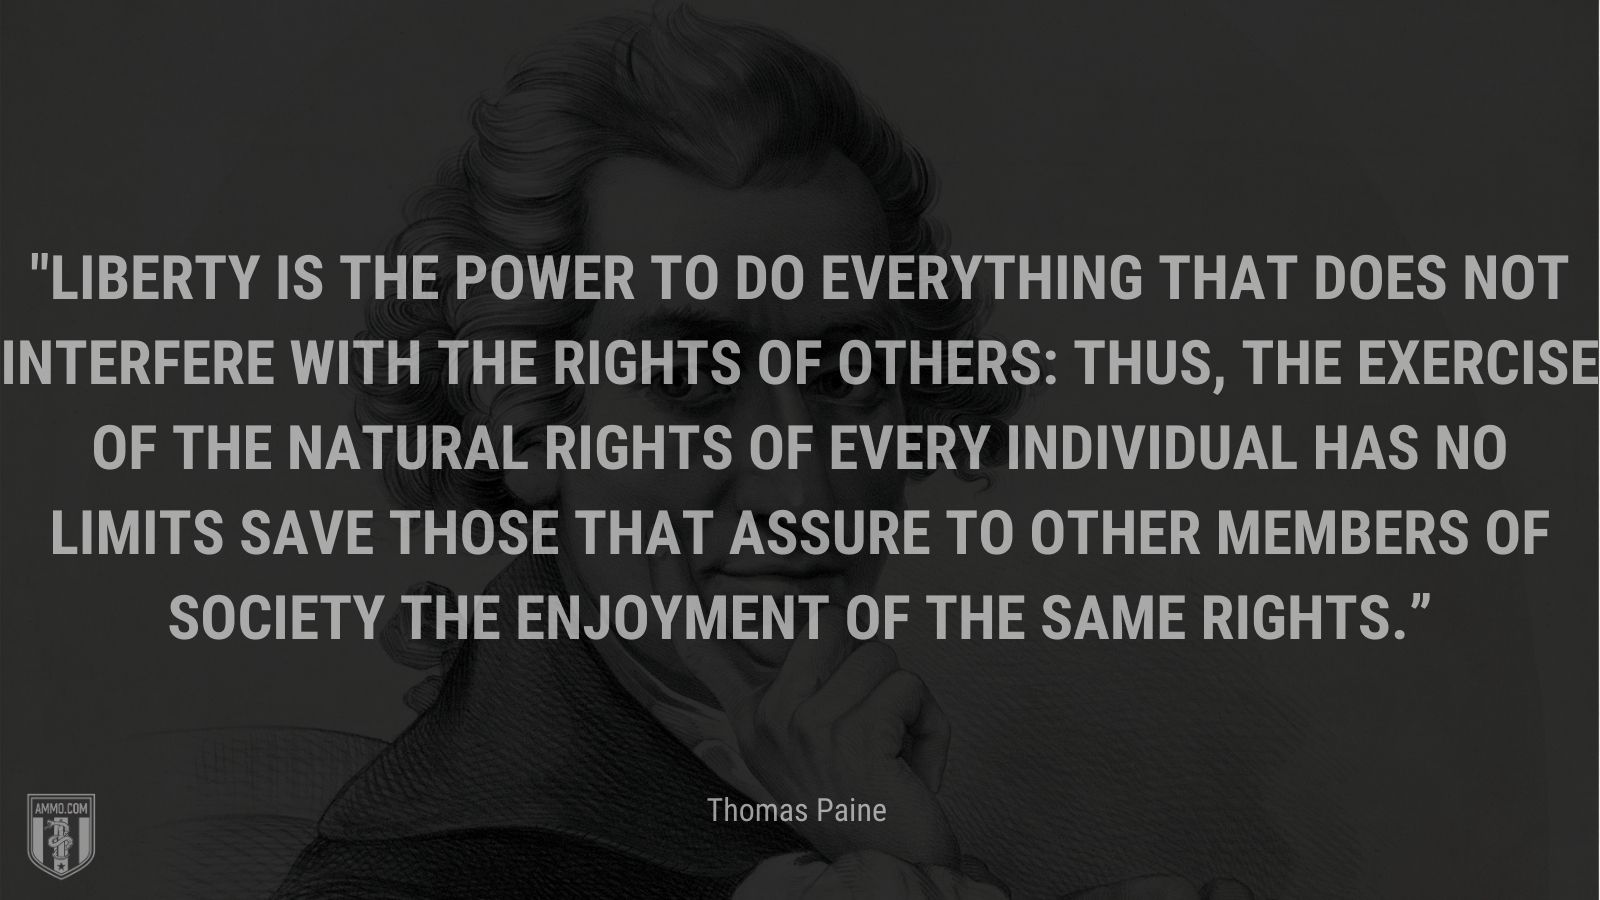 """""""Liberty is the power to do everything that does not interfere with the rights of others: thus, the exercise of the natural rights of every individual has no limits save those that assure to other members of society the enjoyment of the same rights"""" - Thomas Paine"""